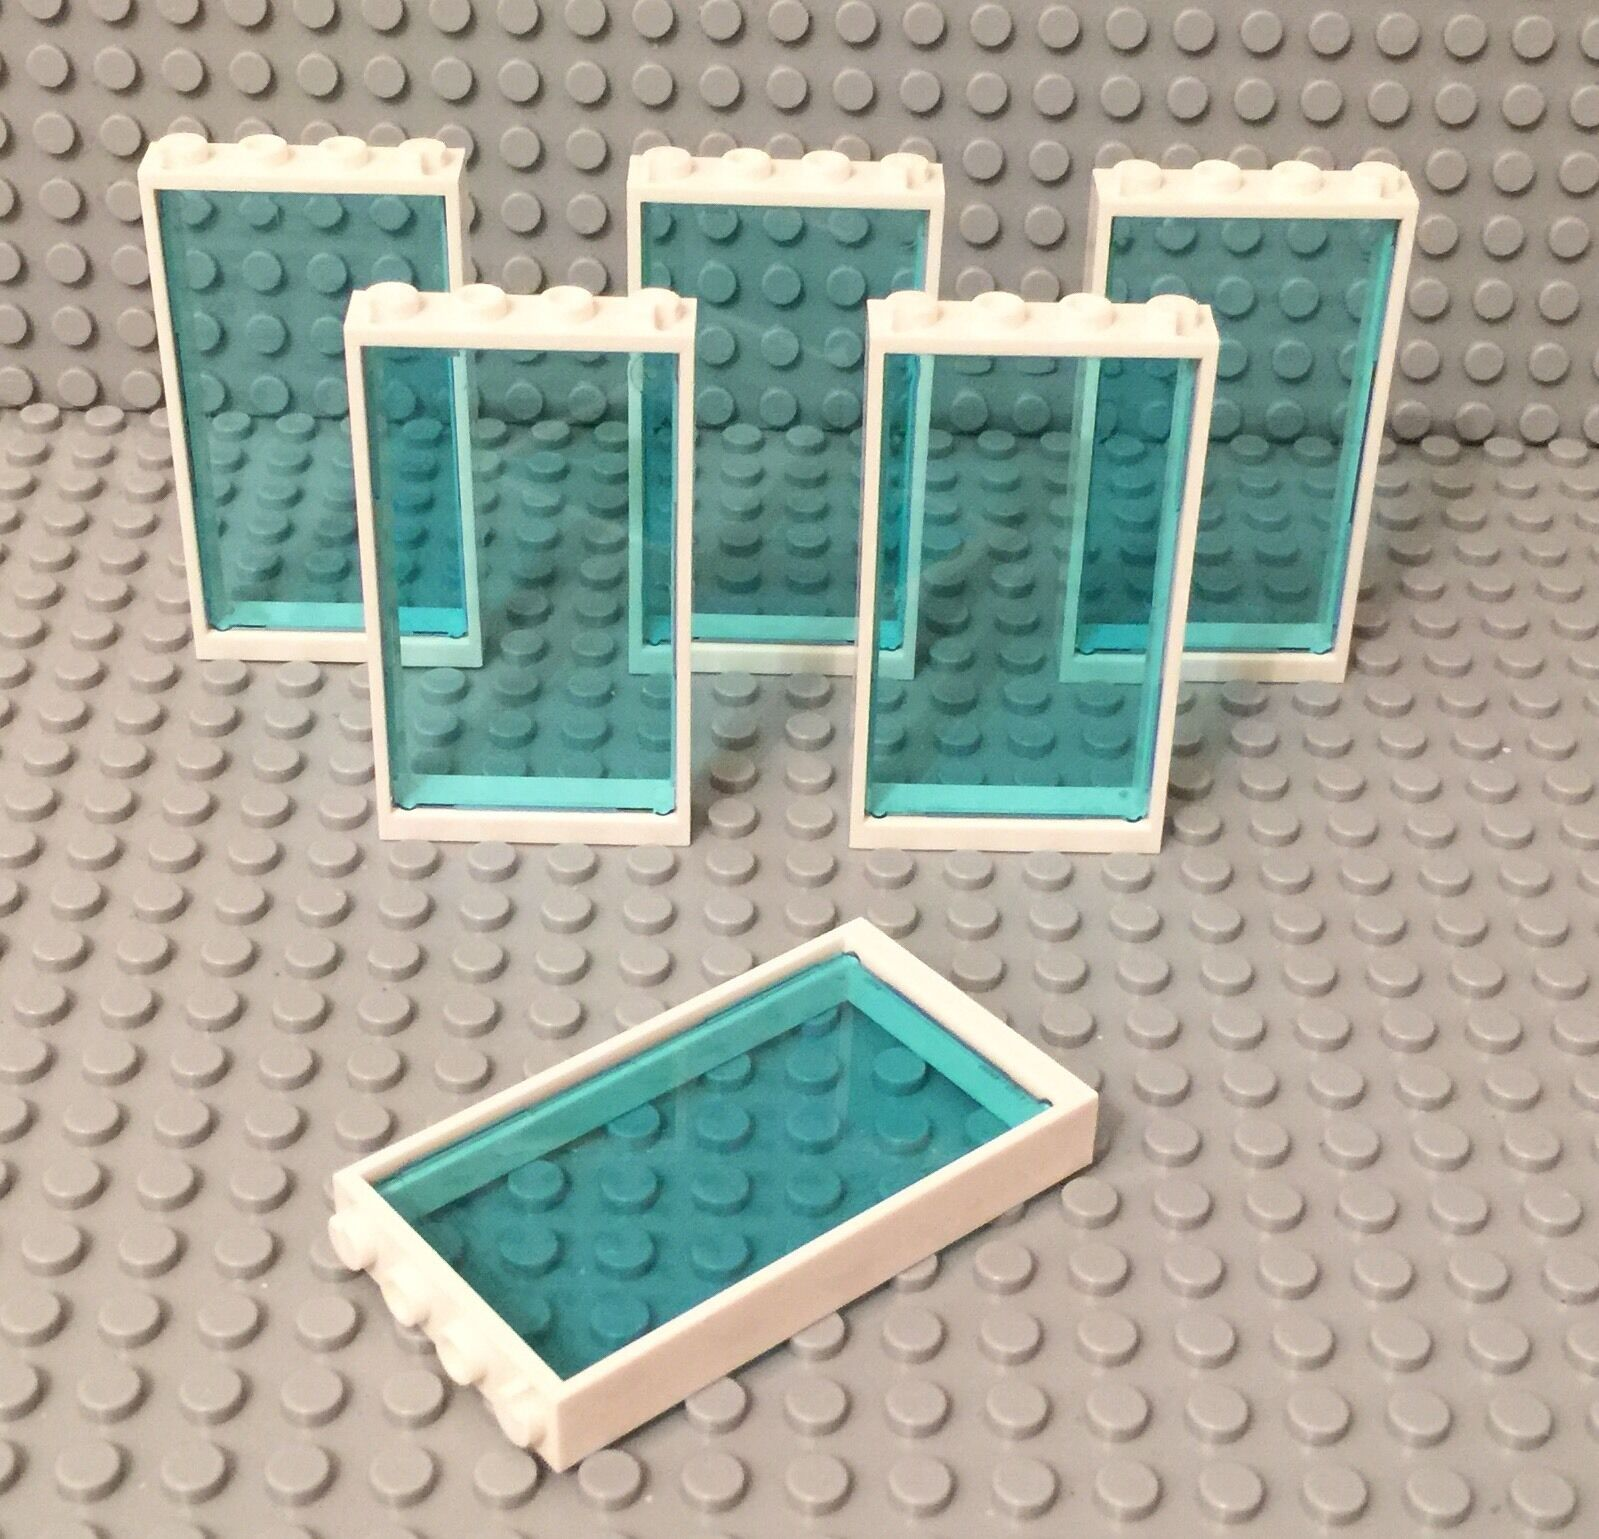 NEW Lego Lot of 4 Light Blue Transparent Doors with White Frames 1x4x6